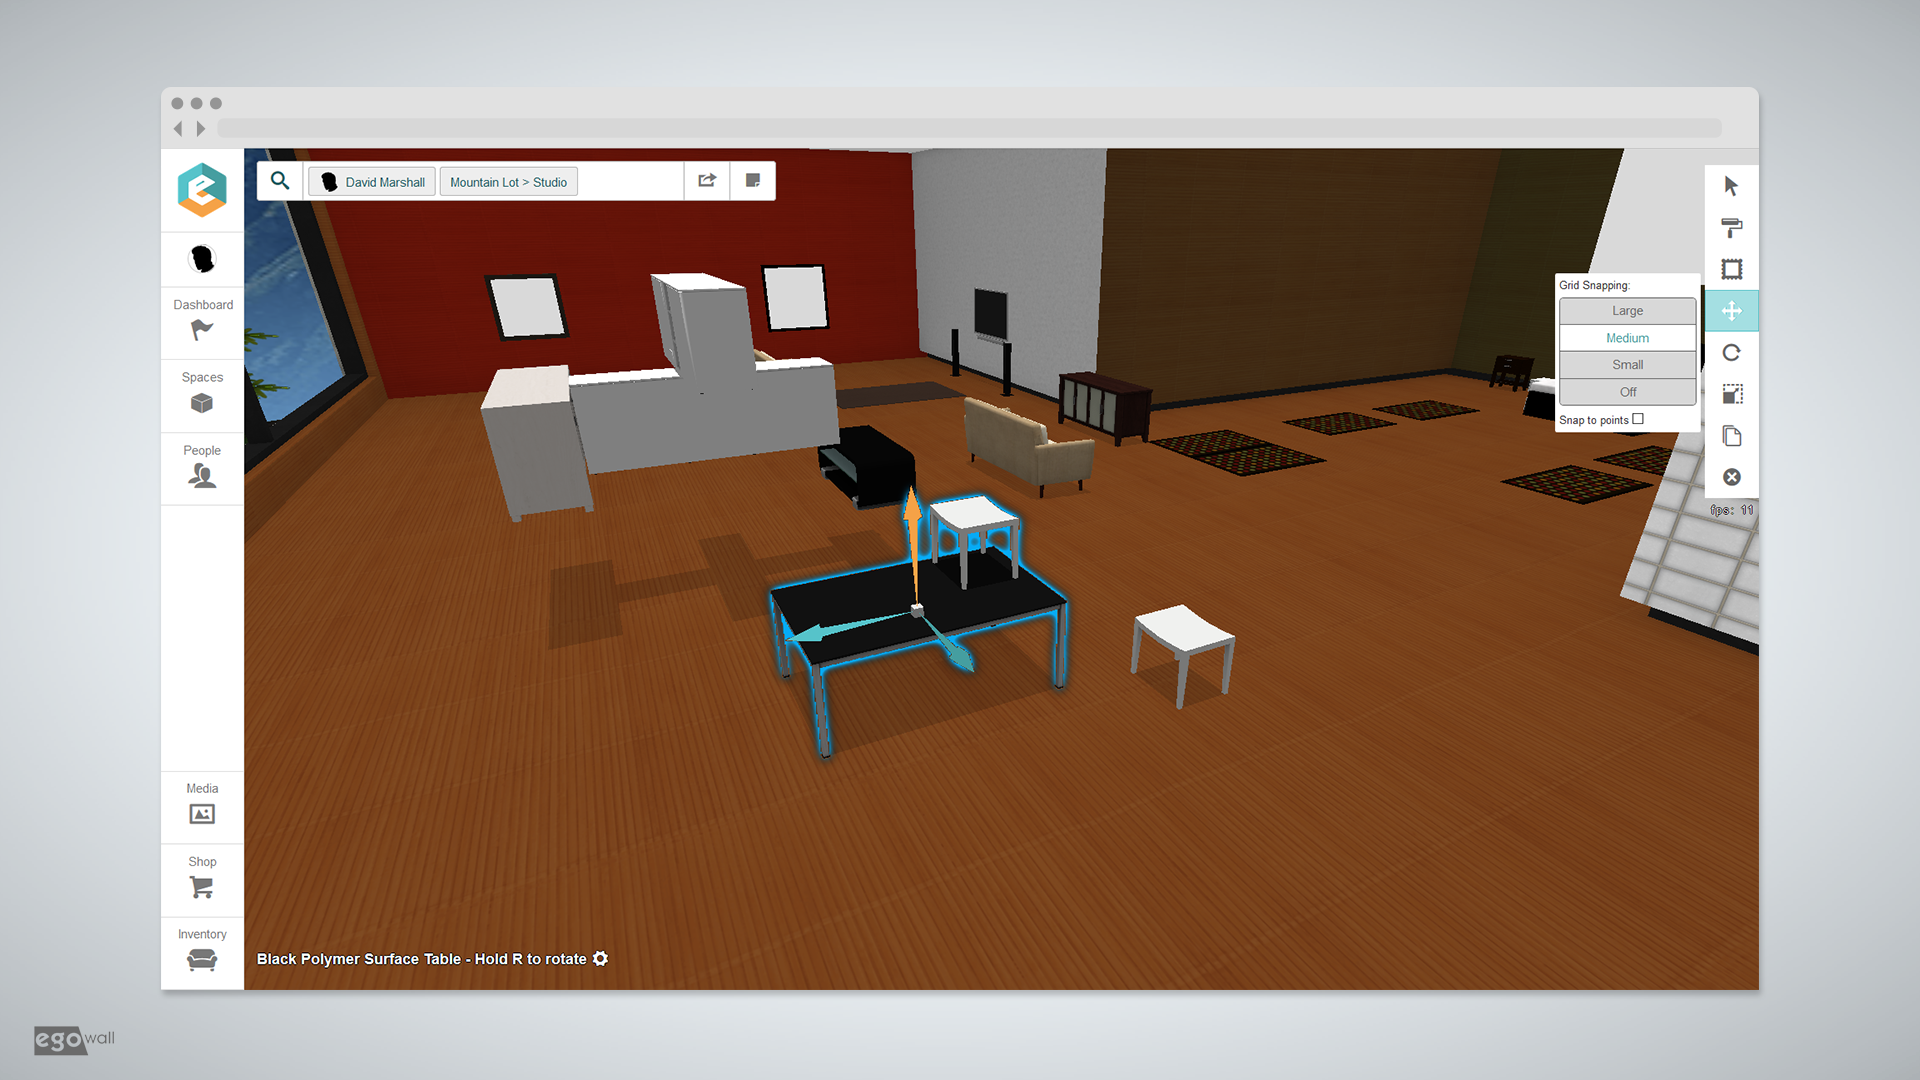 Screenshot of 3d object manipulation in Egowall